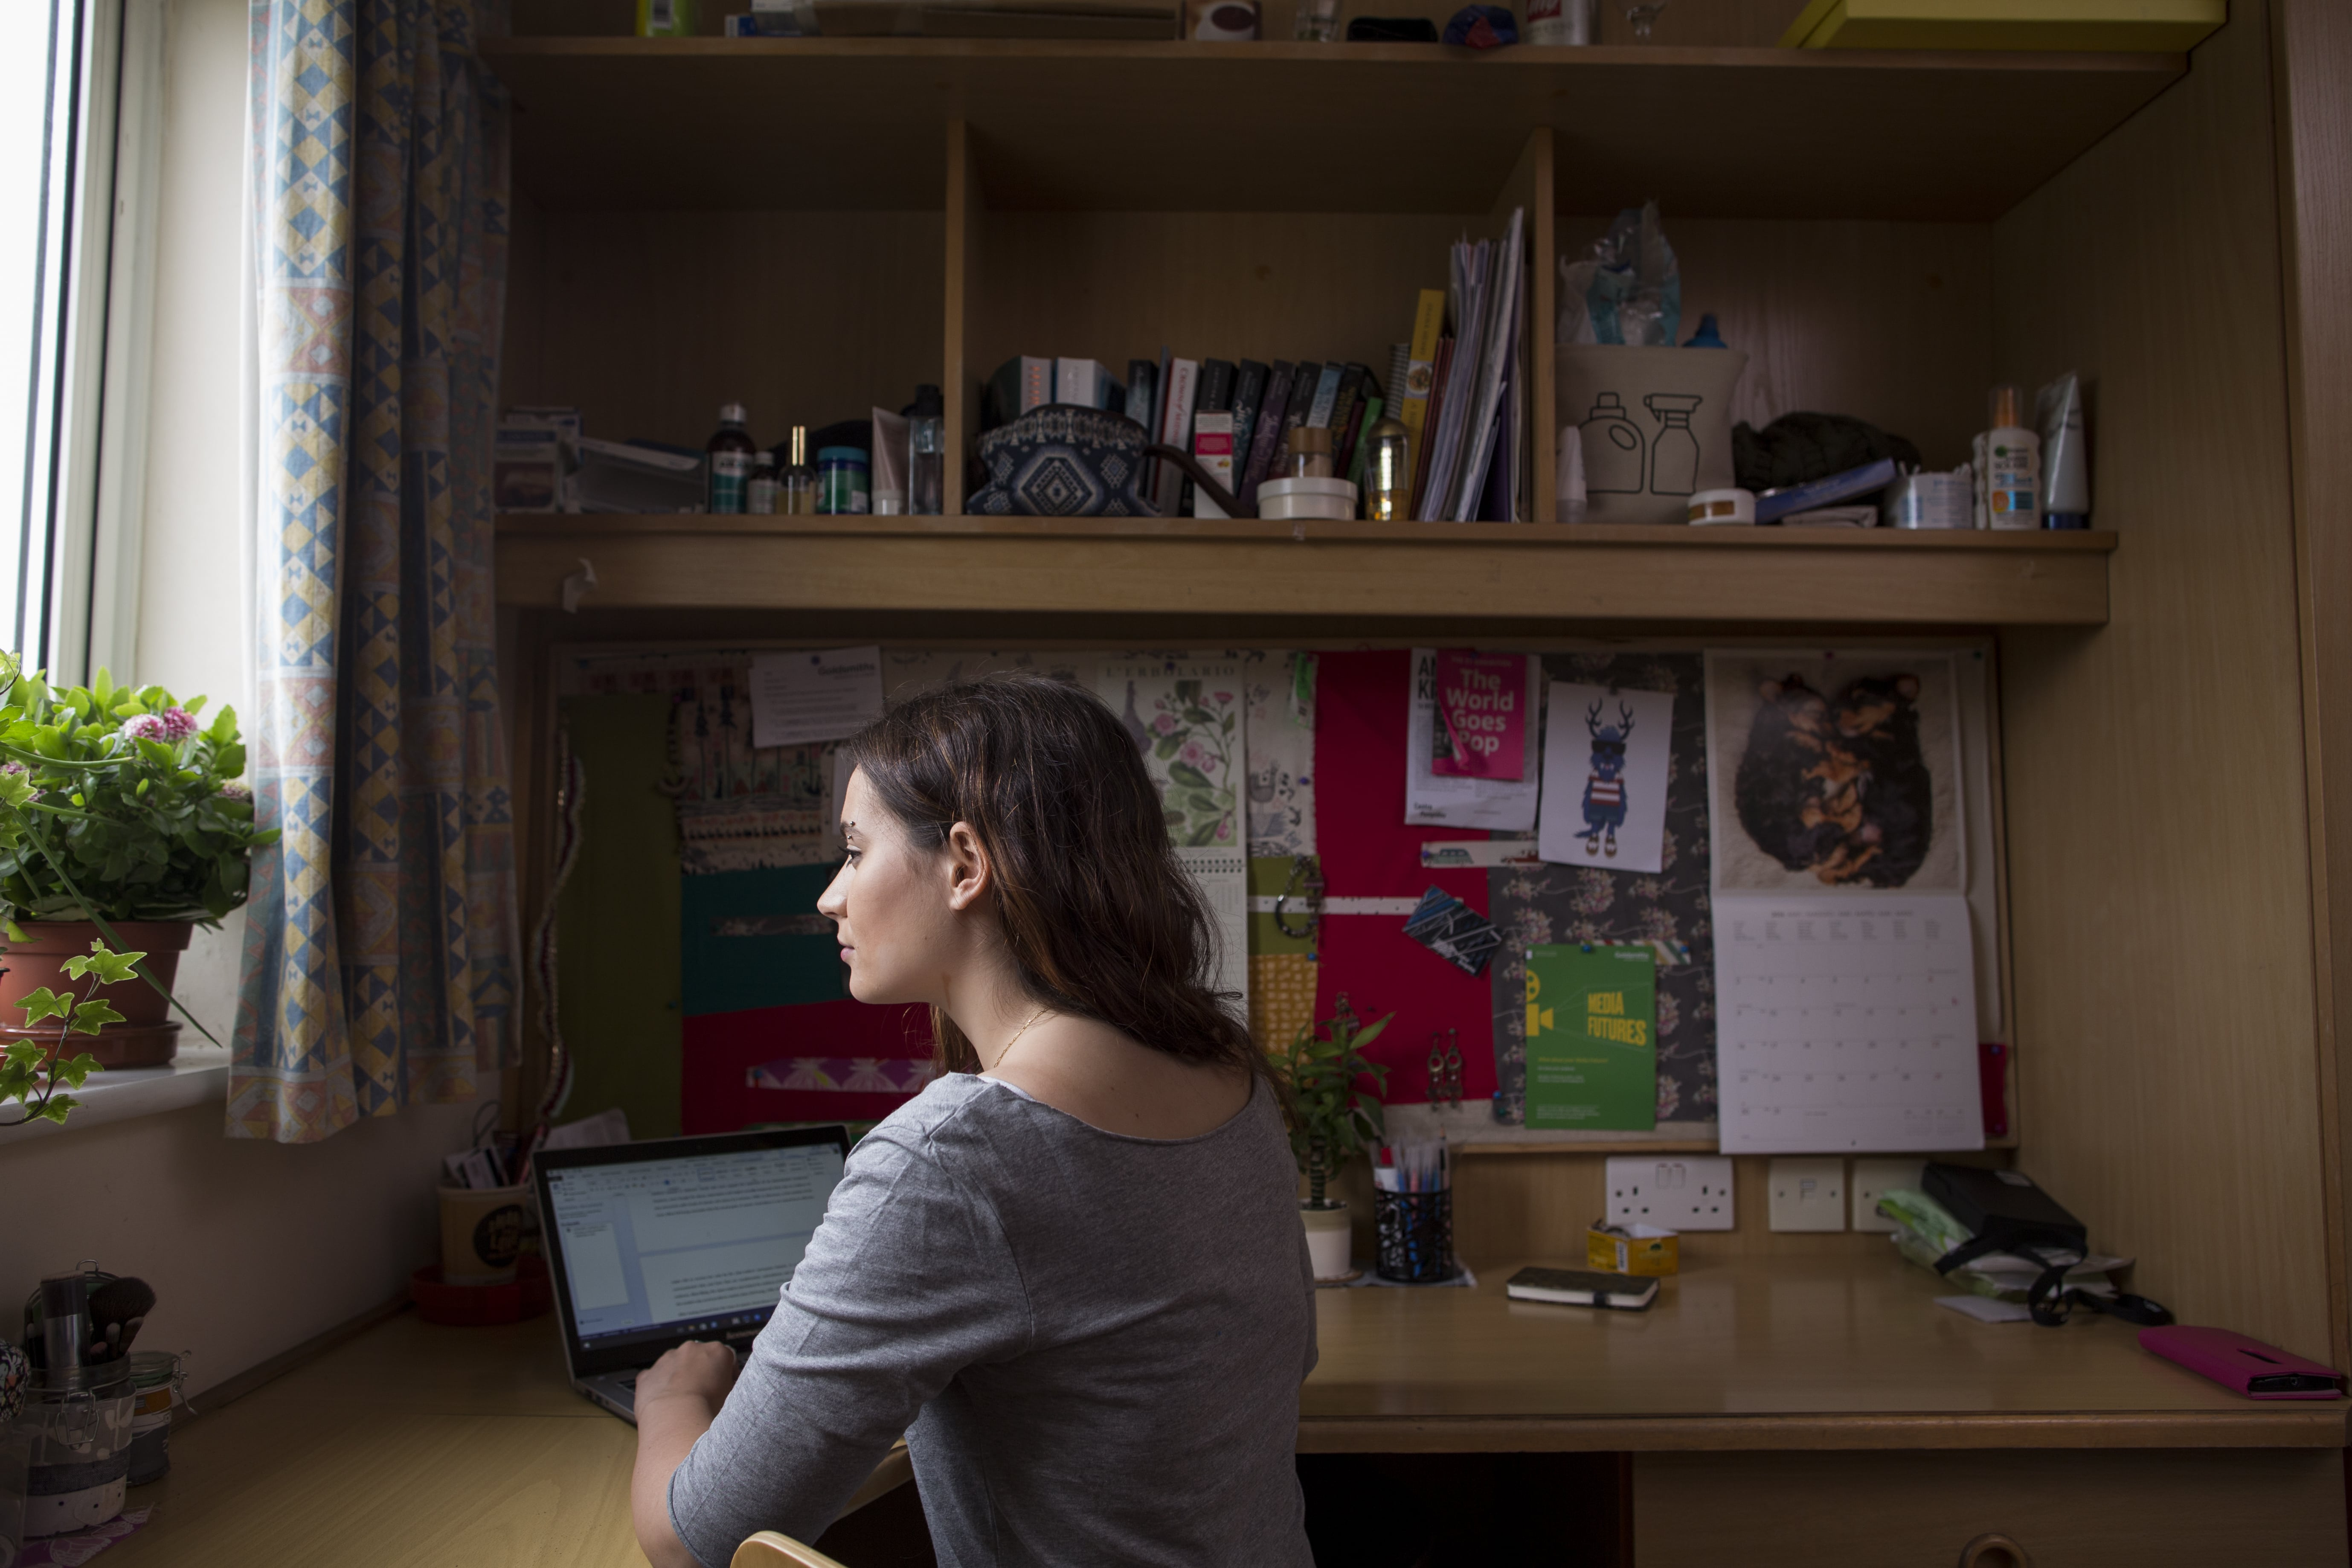 Student works at their desk